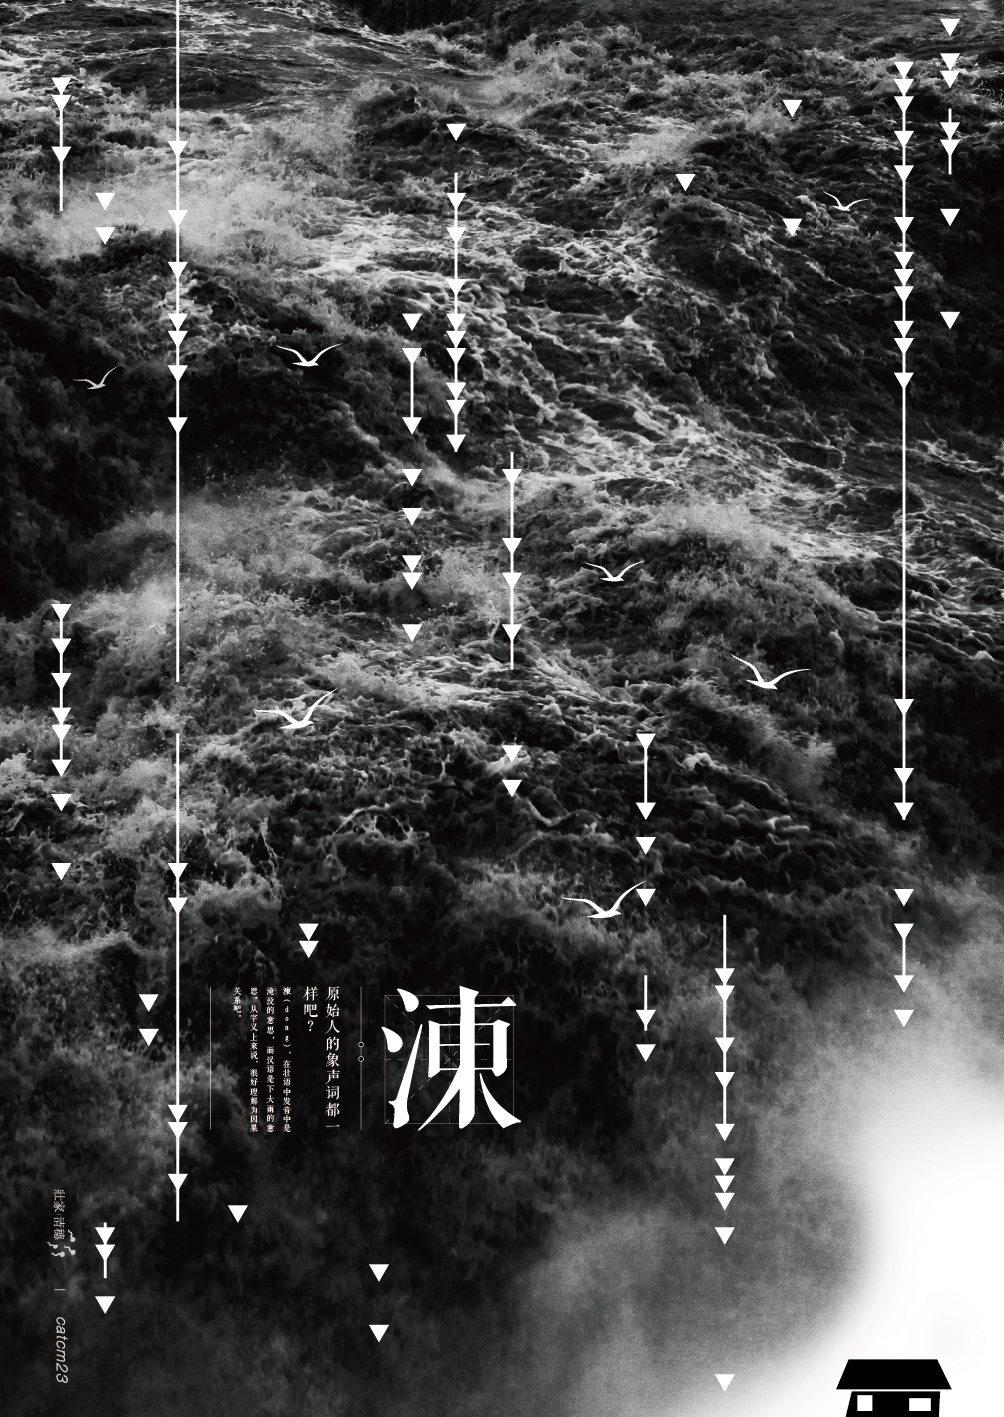 象声词_The Chinese characters of Zhuang language 壮语中的汉字 on Behance